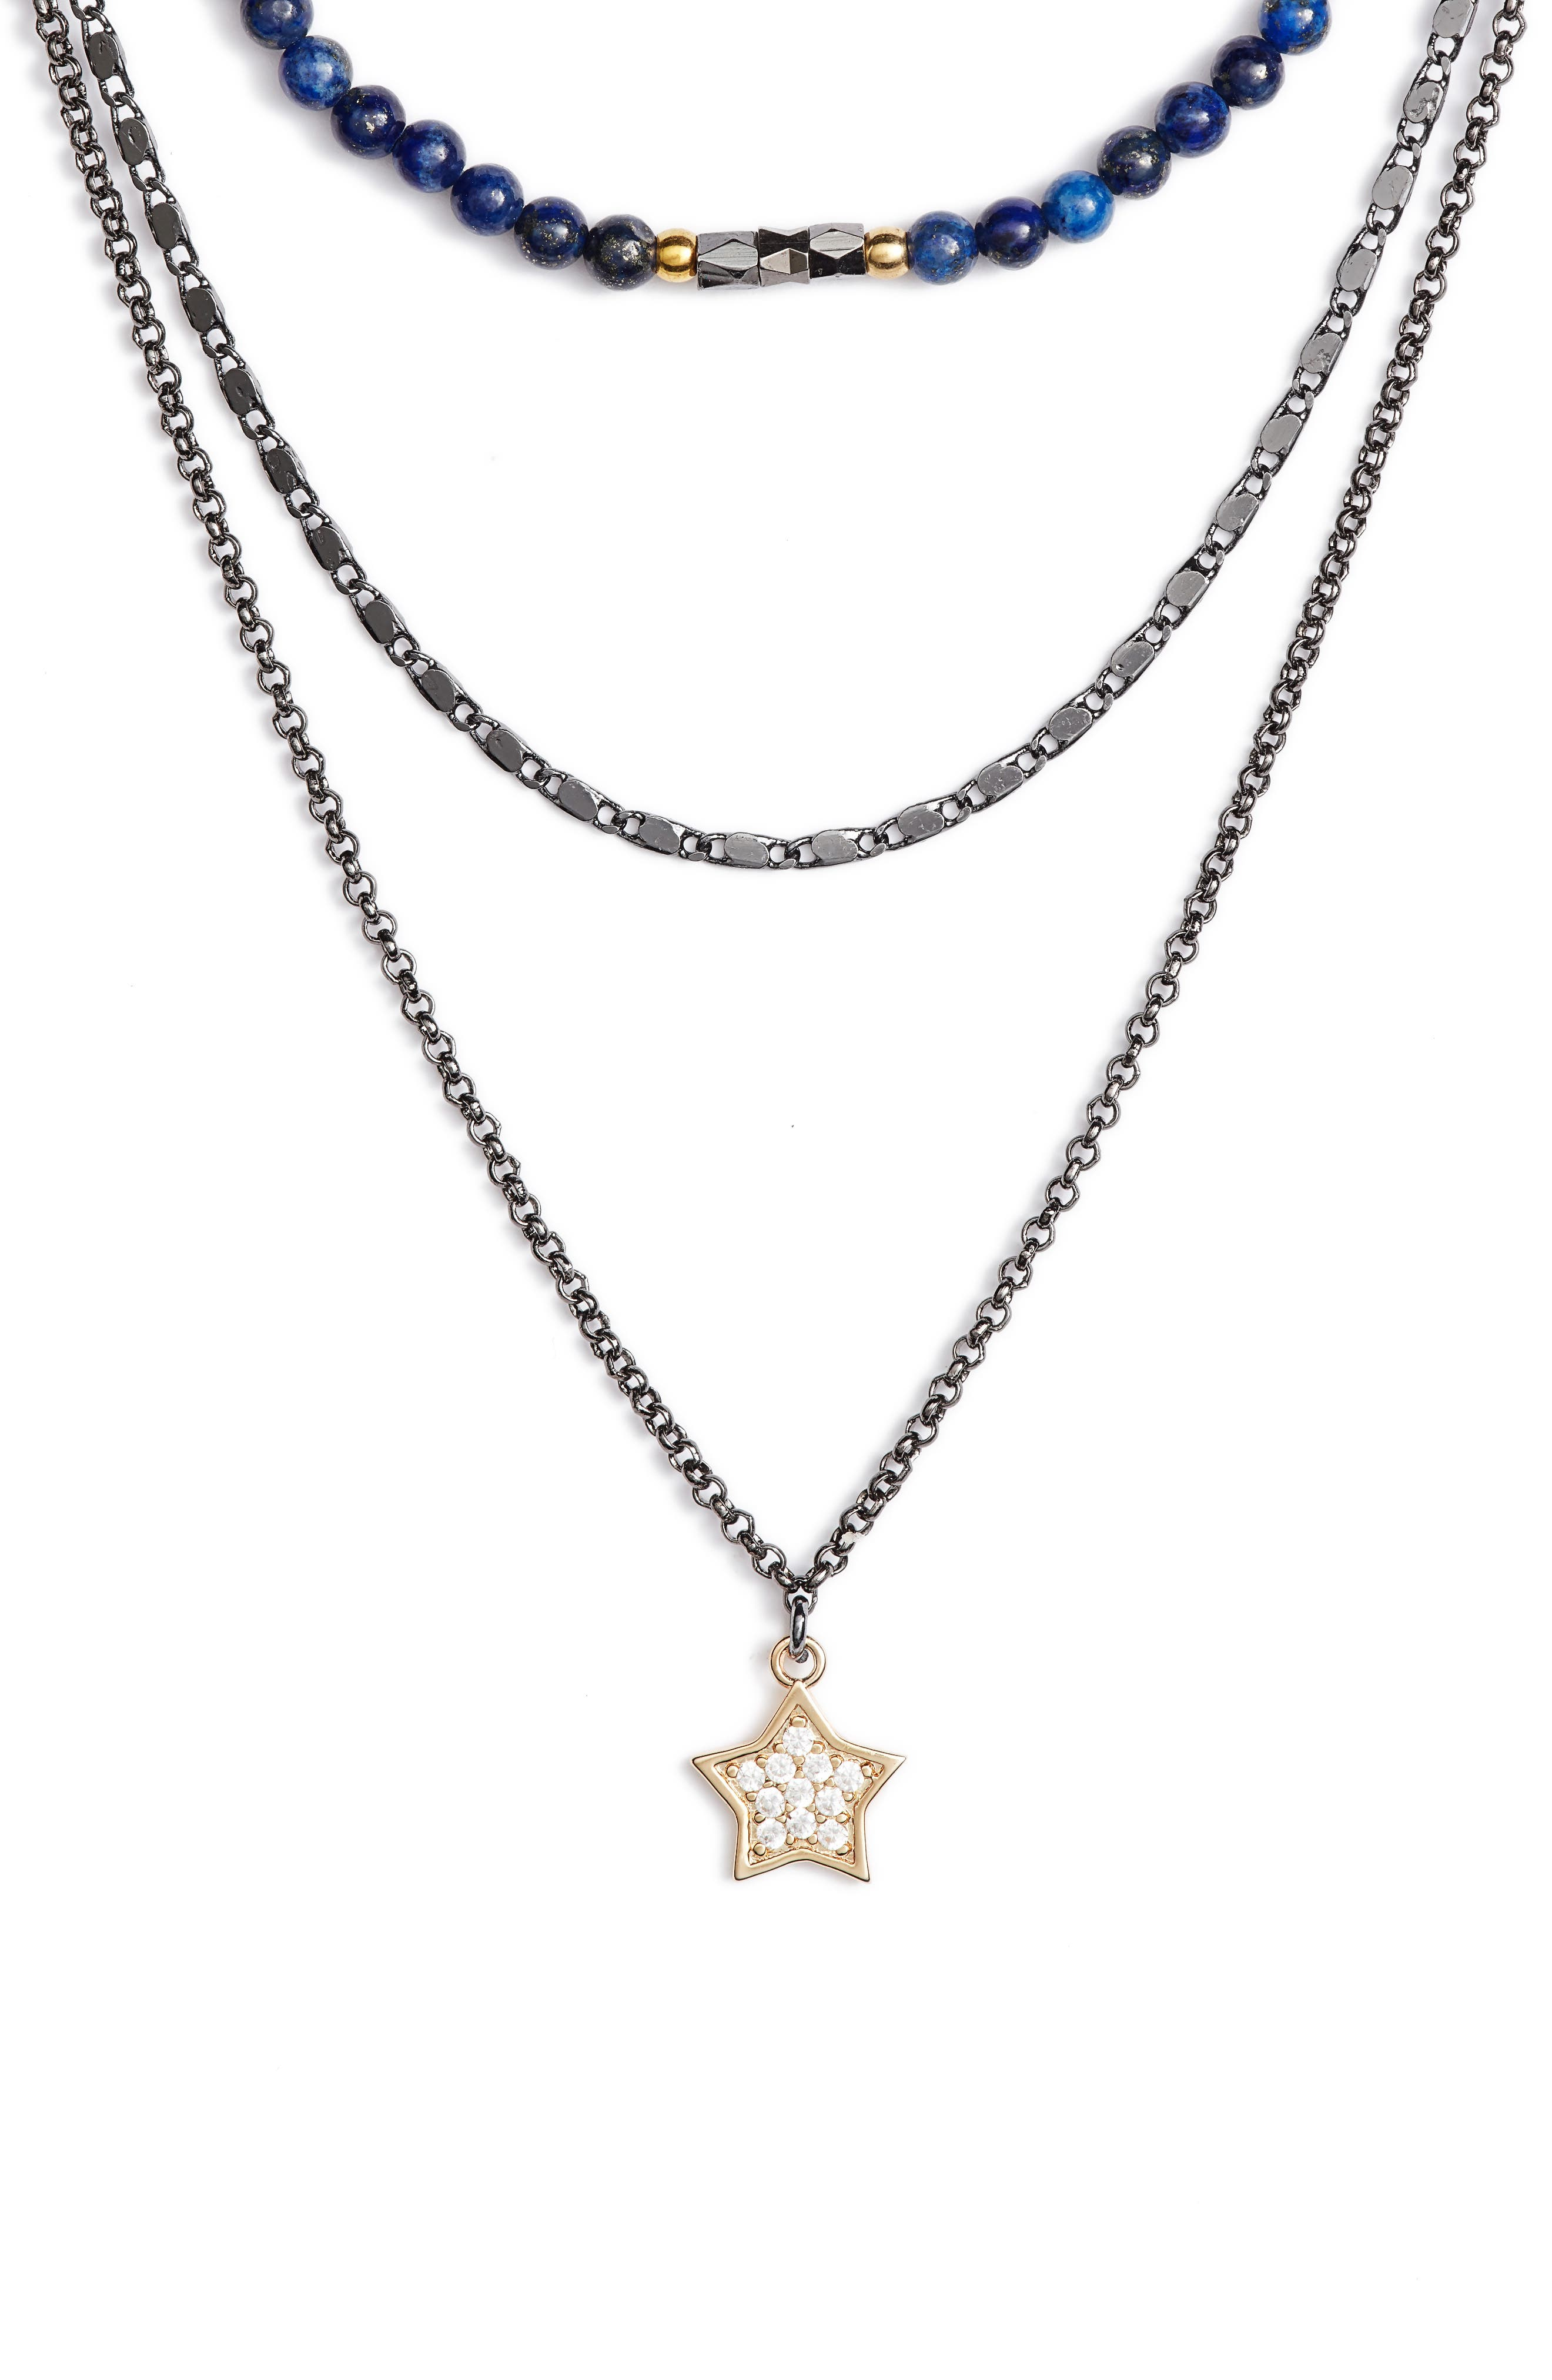 Main Image - Nakamol Design Star Charm Layered Necklace